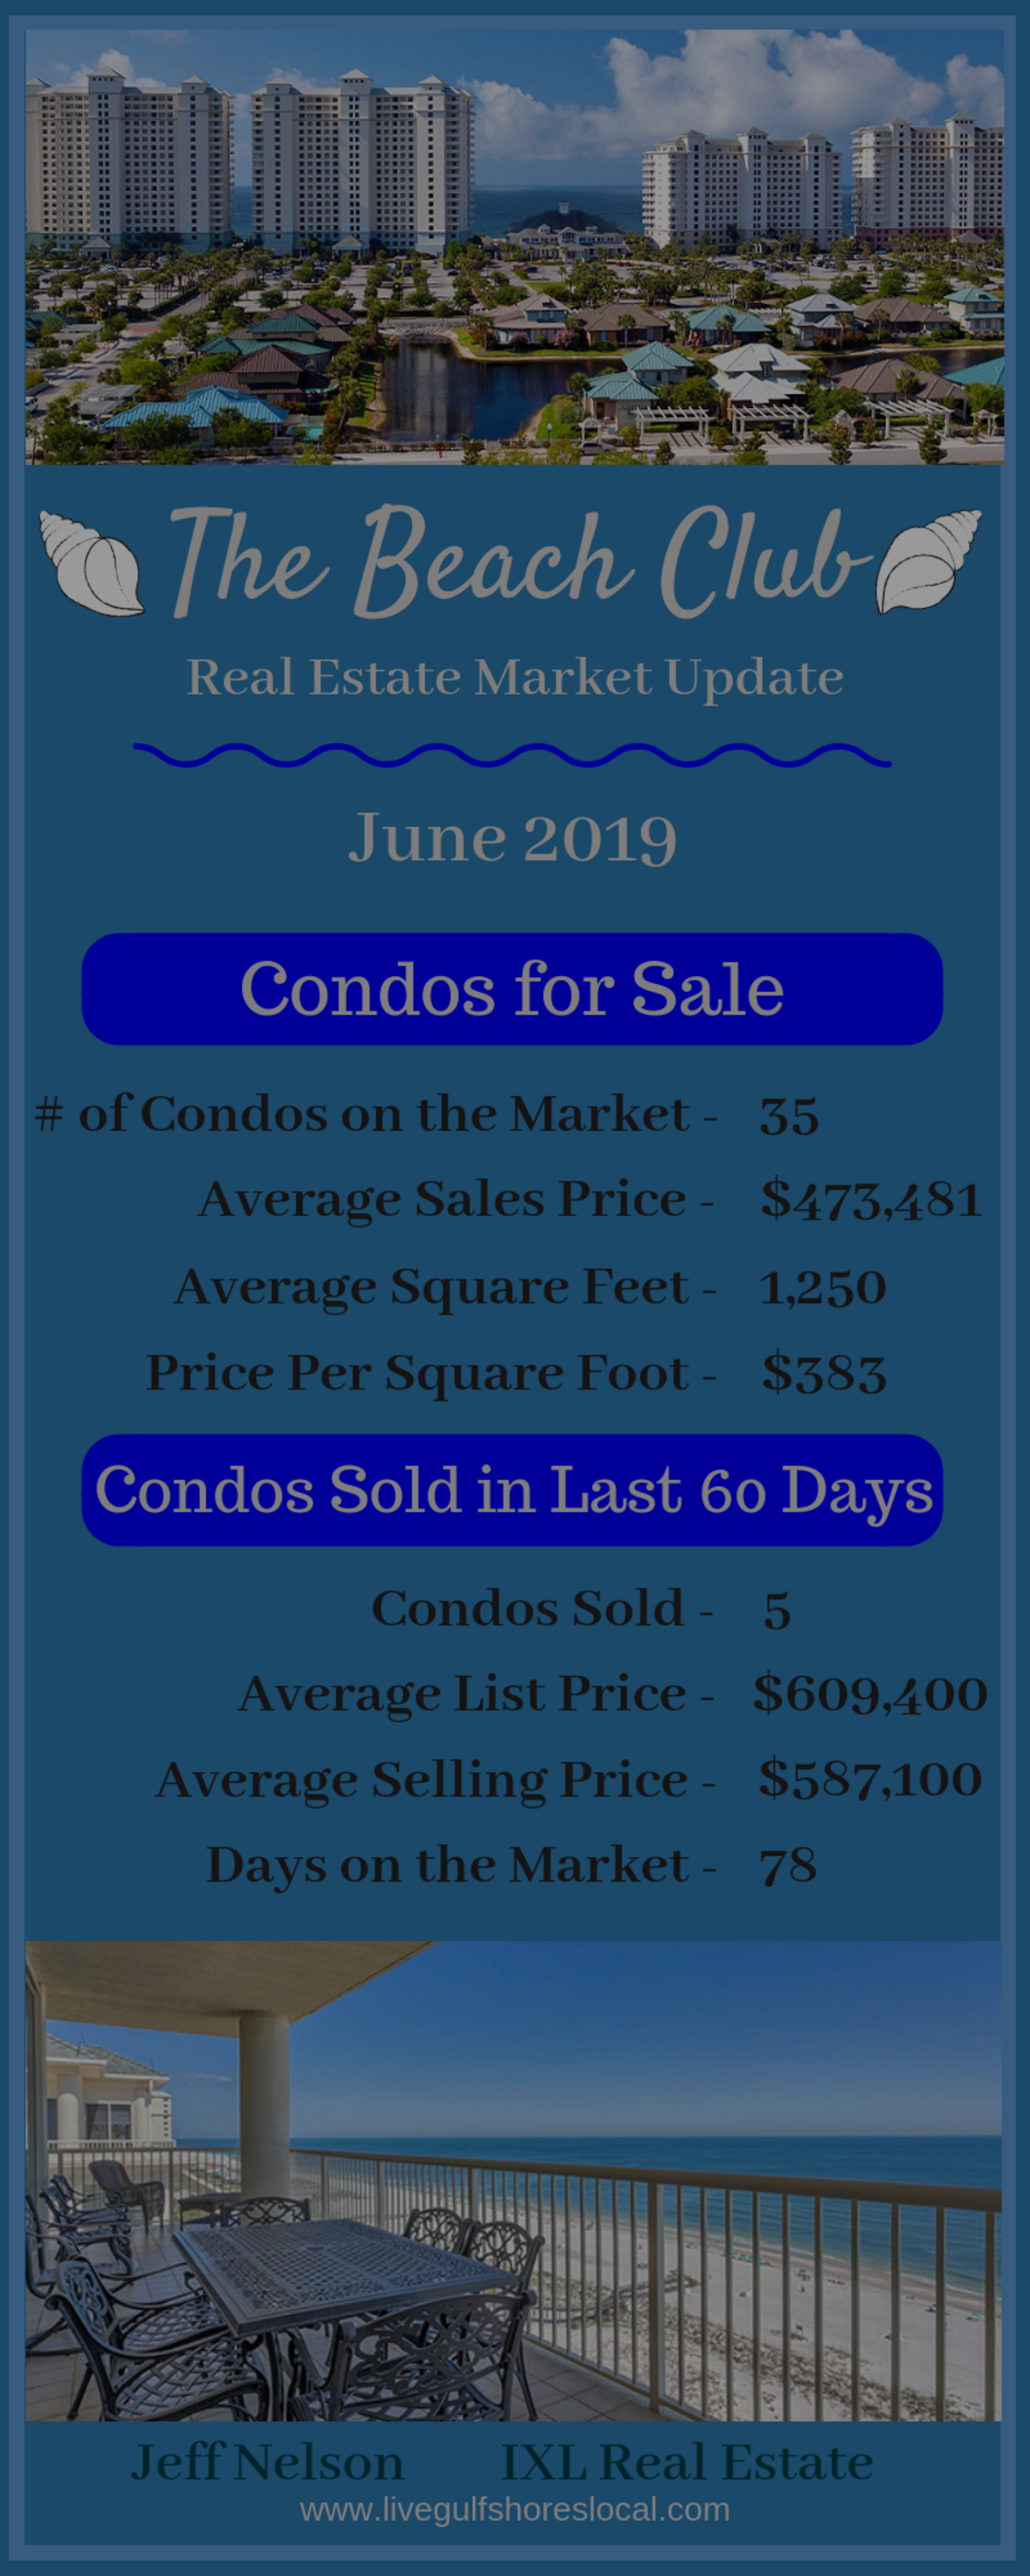 The Beach Club Real Estate Market Report – June 2019